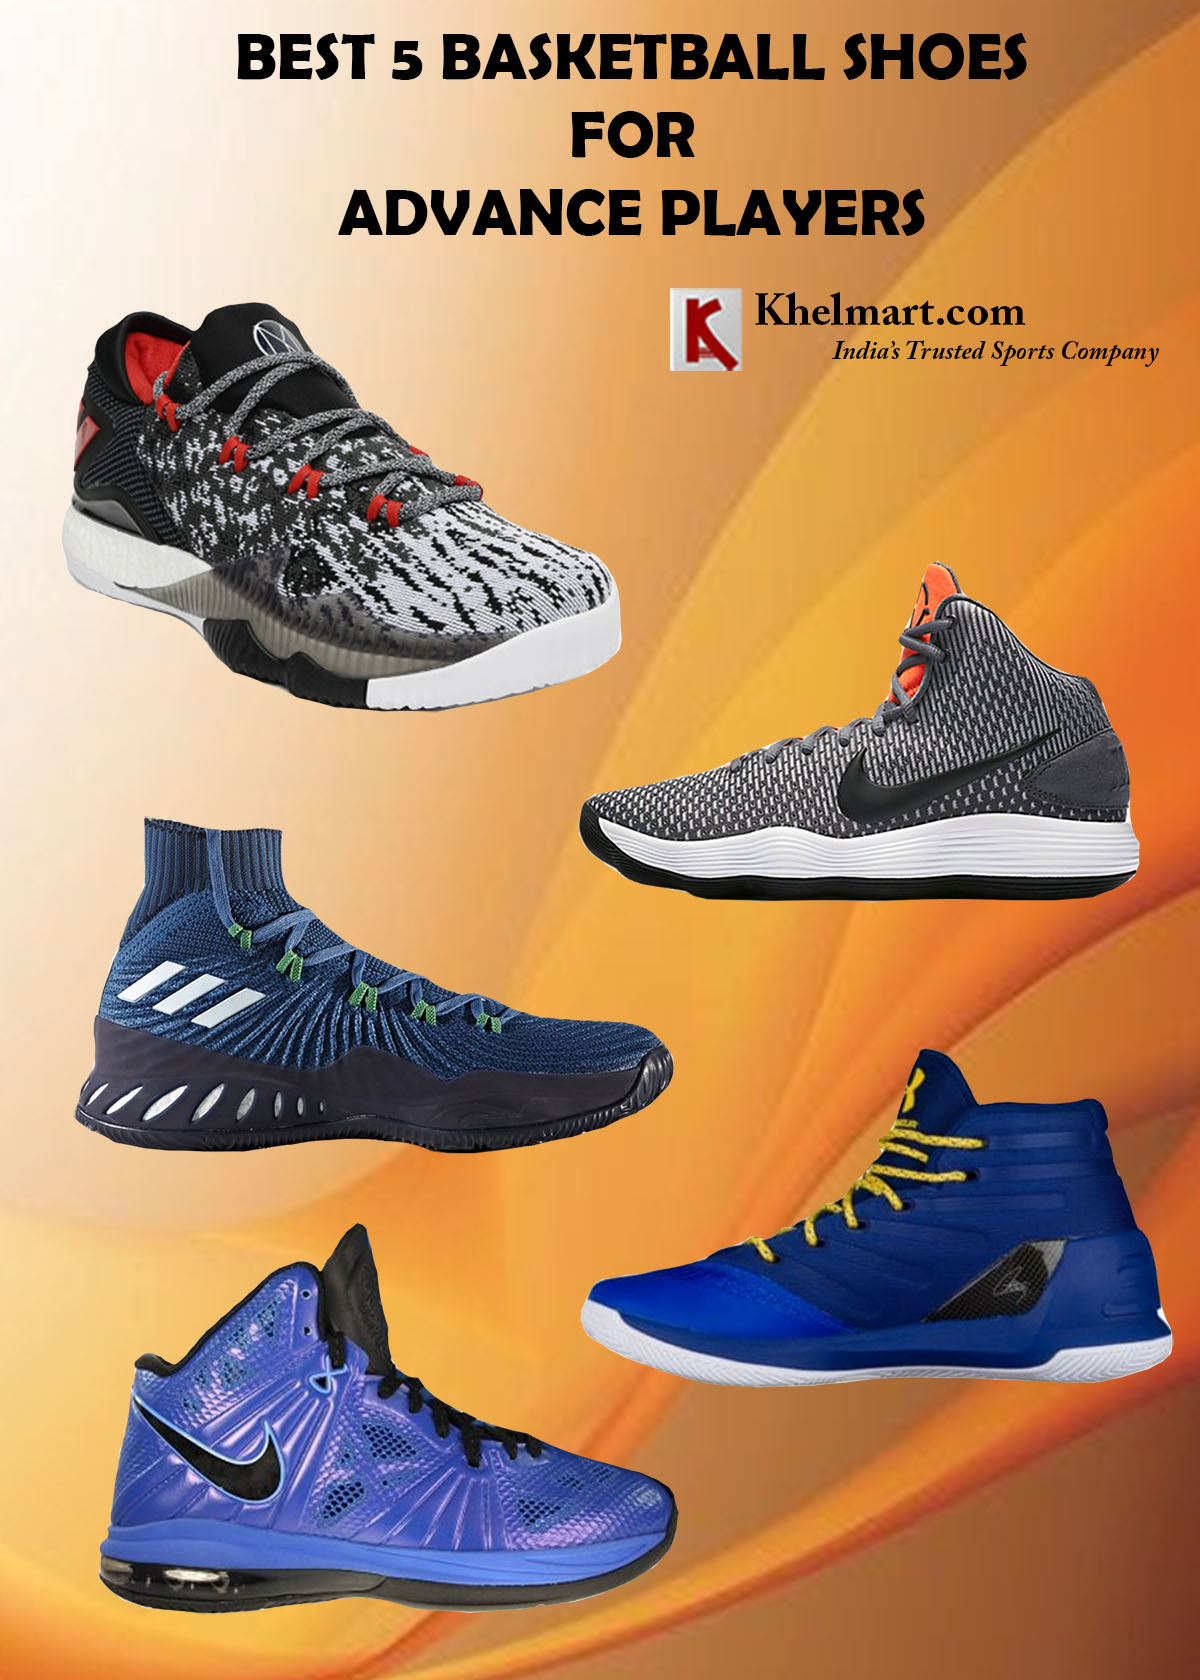 Best 5 Basketball Shoes For Advance Players